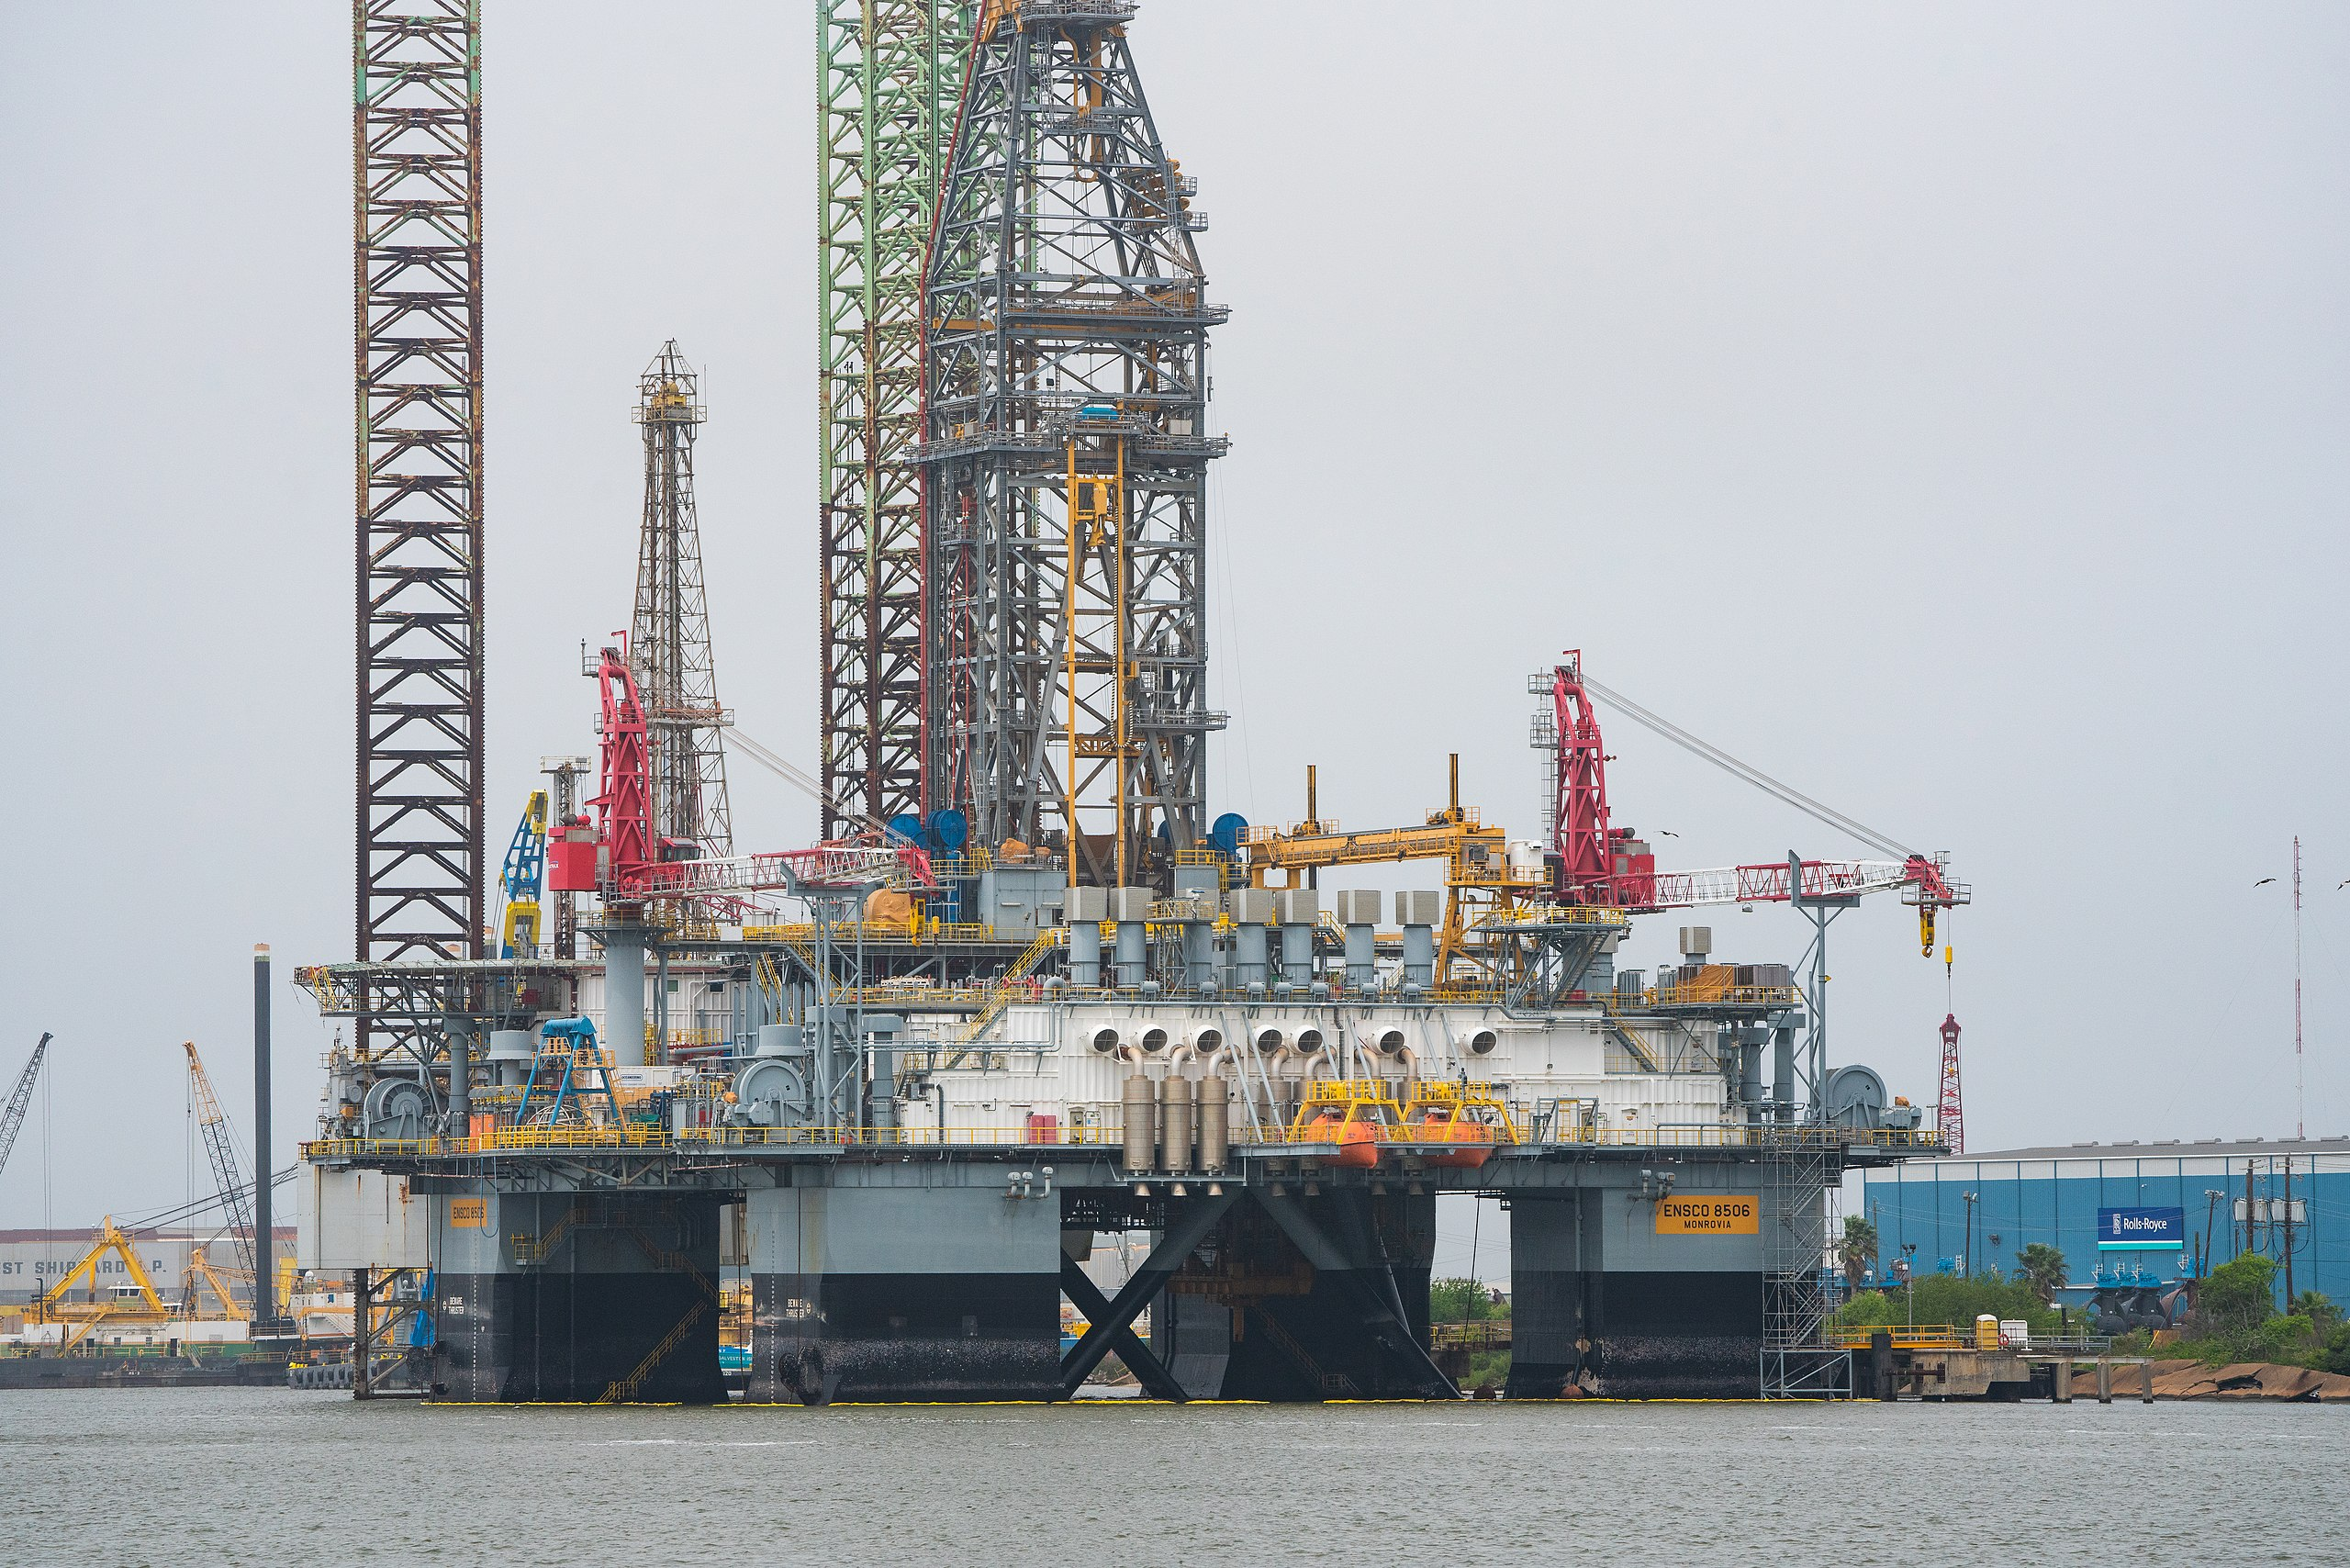 ENSCO offshore oil rig like the one SpaceX is converting